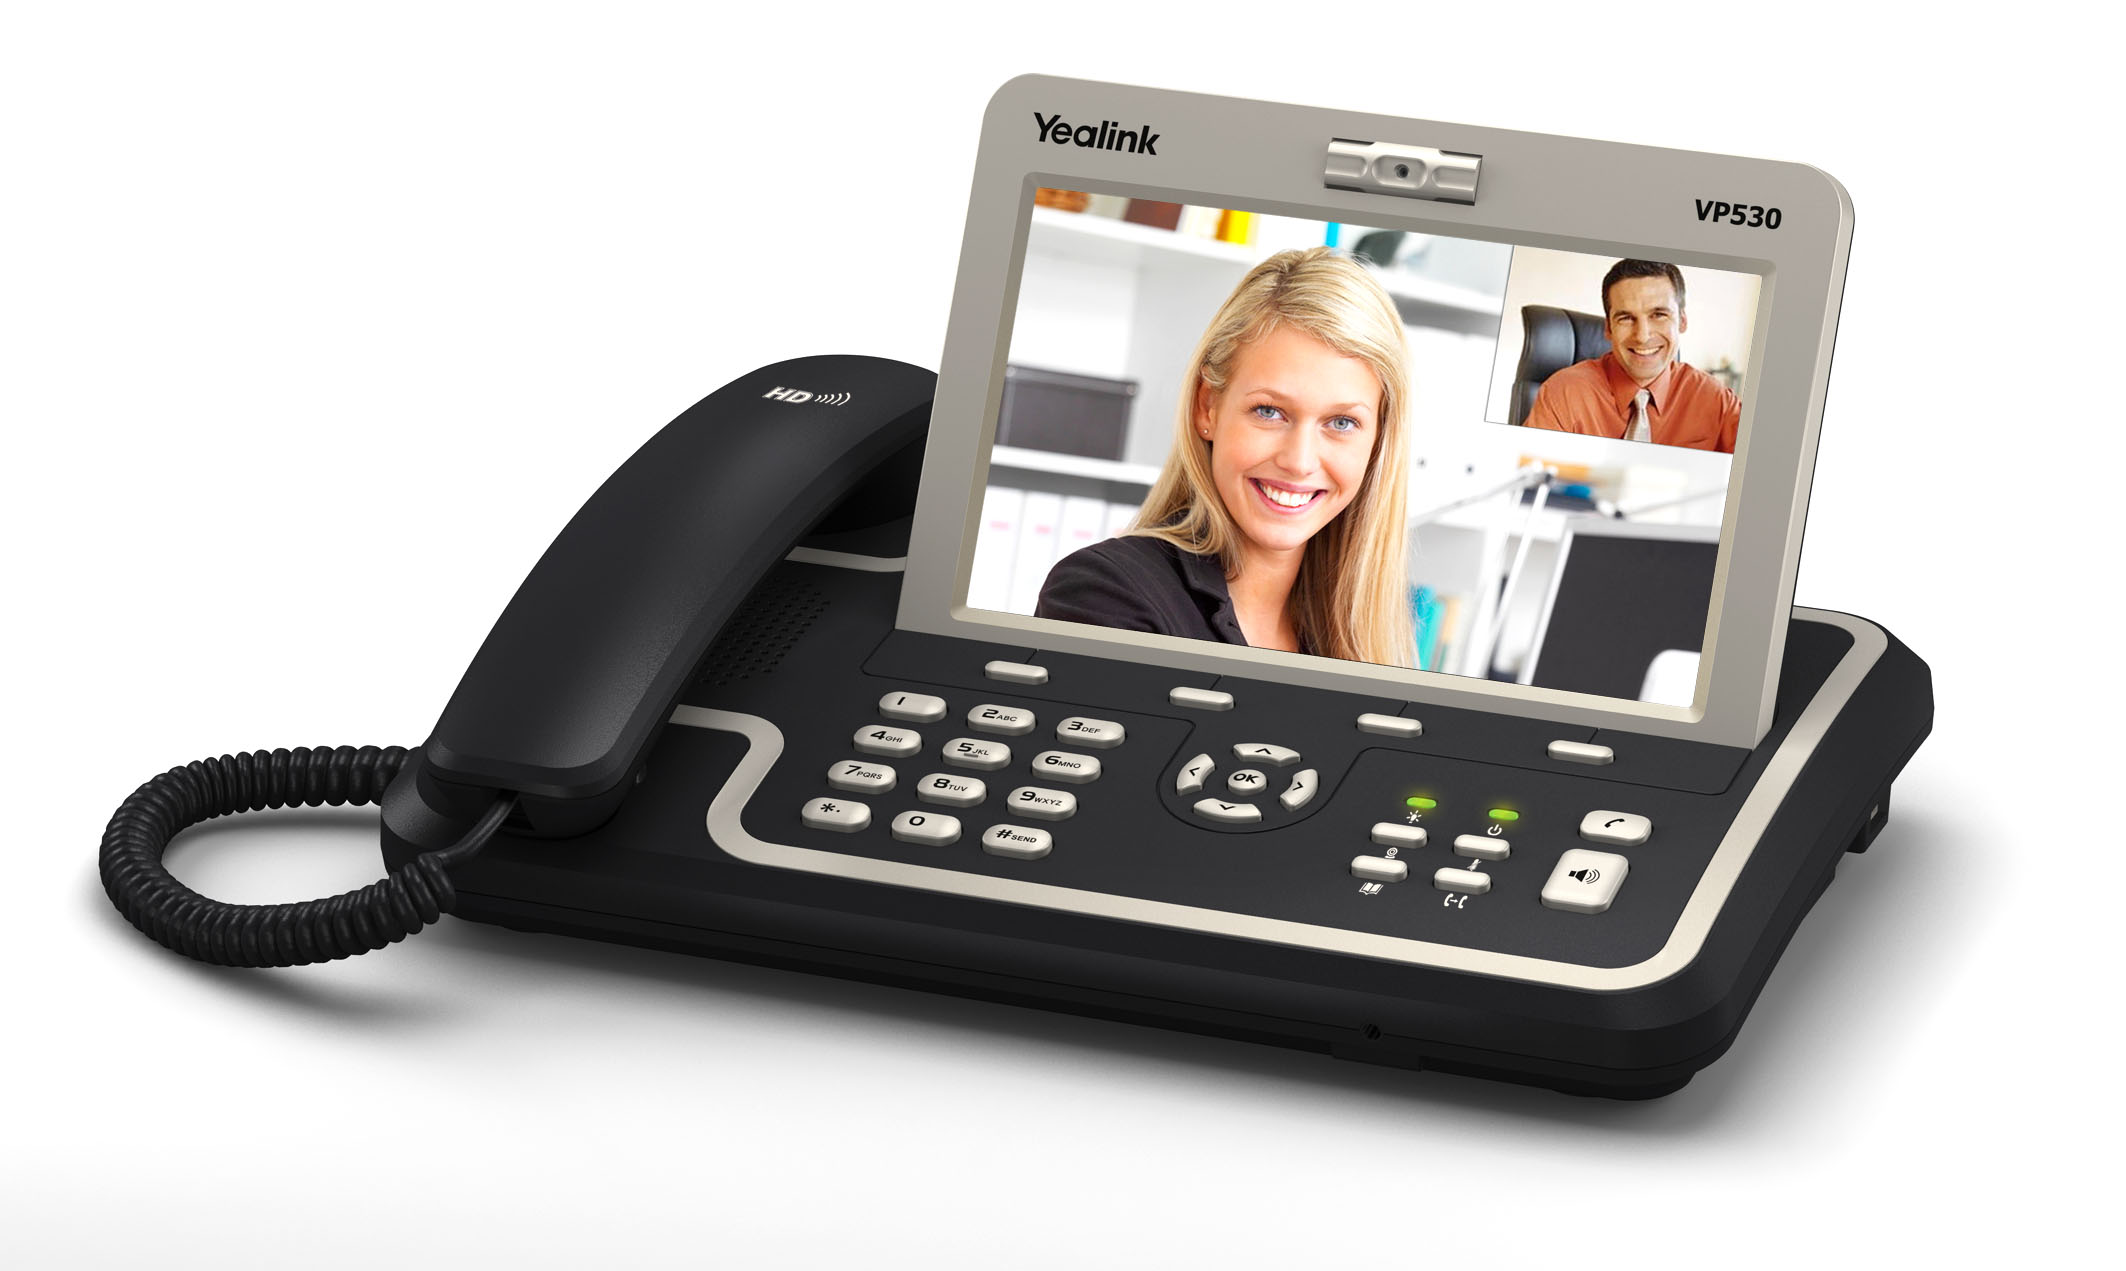 Is Mobile VoIP the Future of VoIP? | Activo